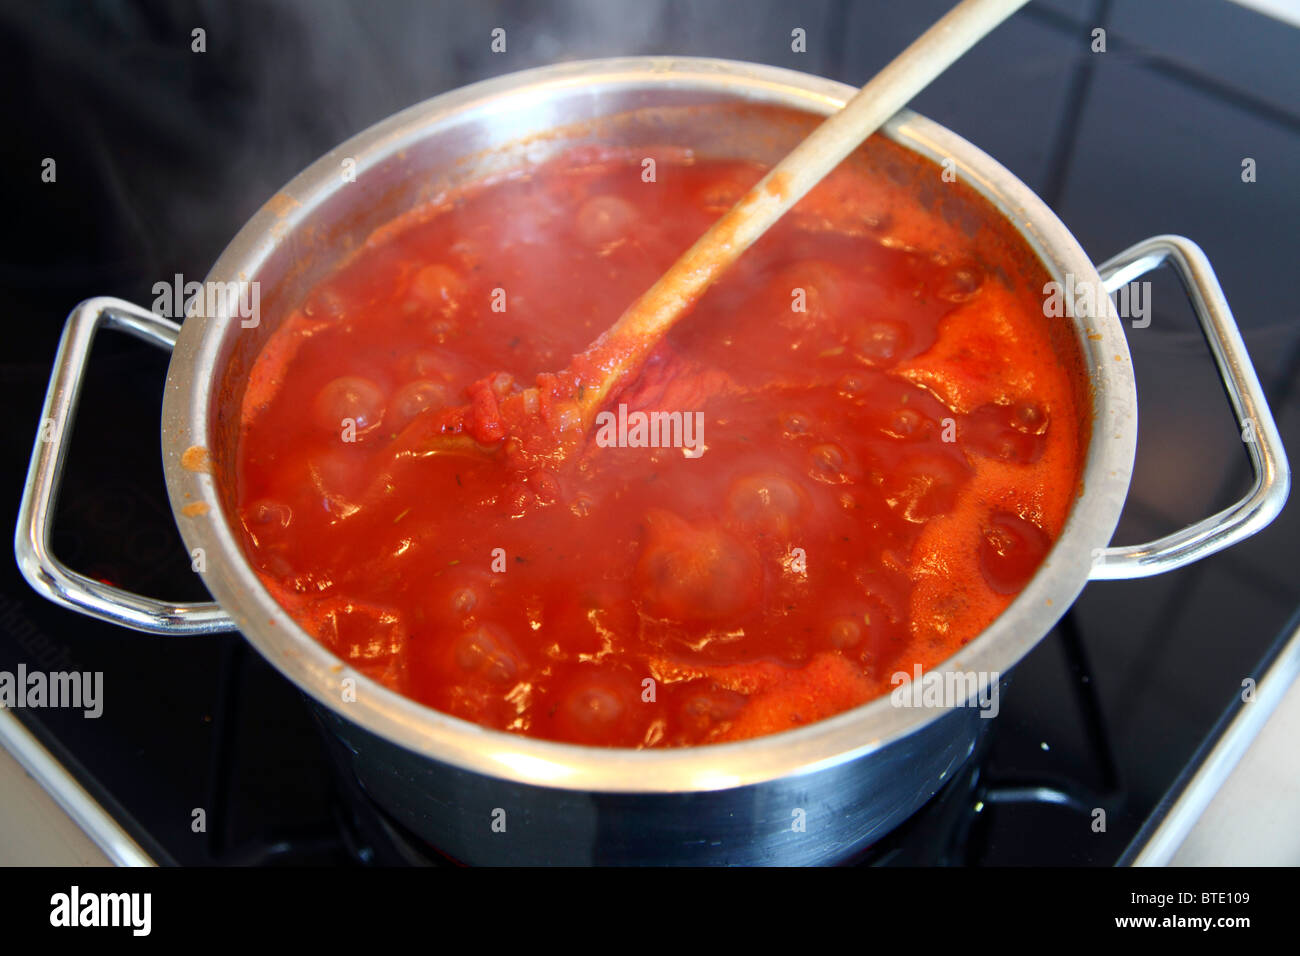 Cooking pot with boiling tomato sauce on an electric oven. - Stock Image